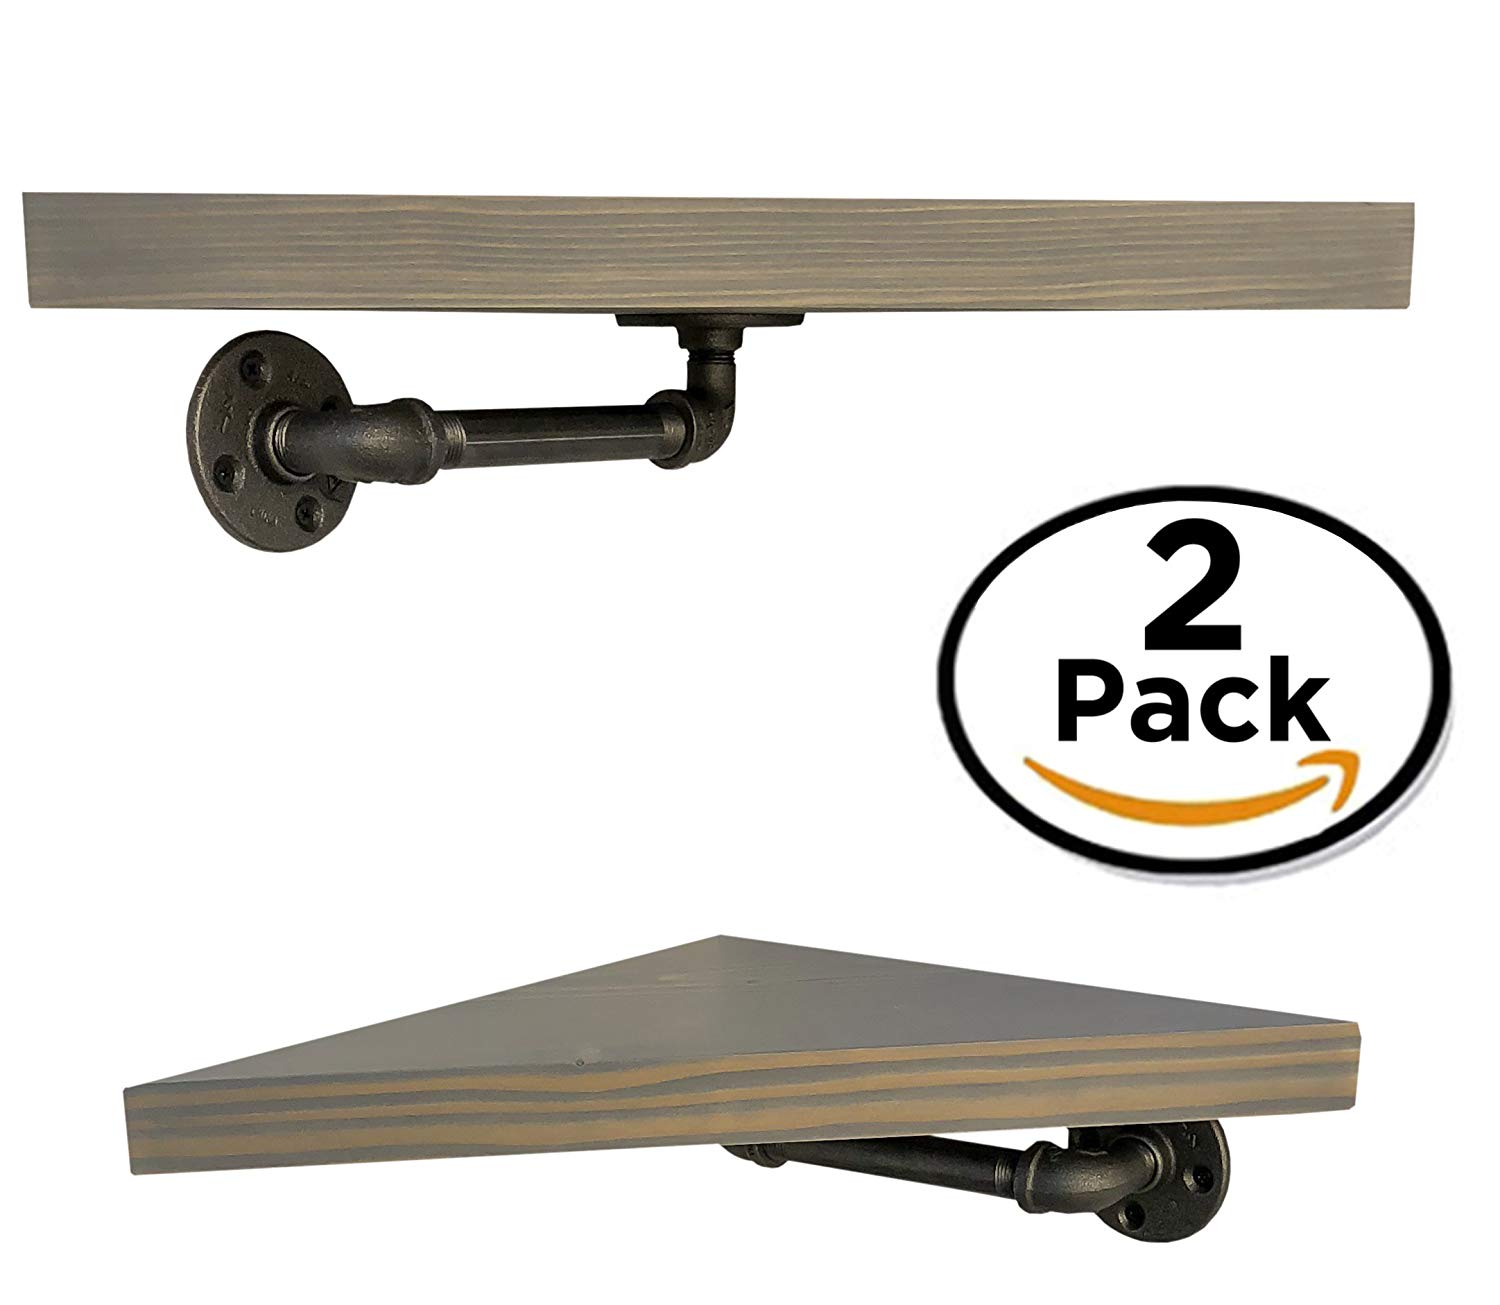 diy cartel industrial pipe corner shelf brackets floating hardware only perfect for shelves and farmhouse vintage furniture wall mounted closet drawers rustic hanging shower